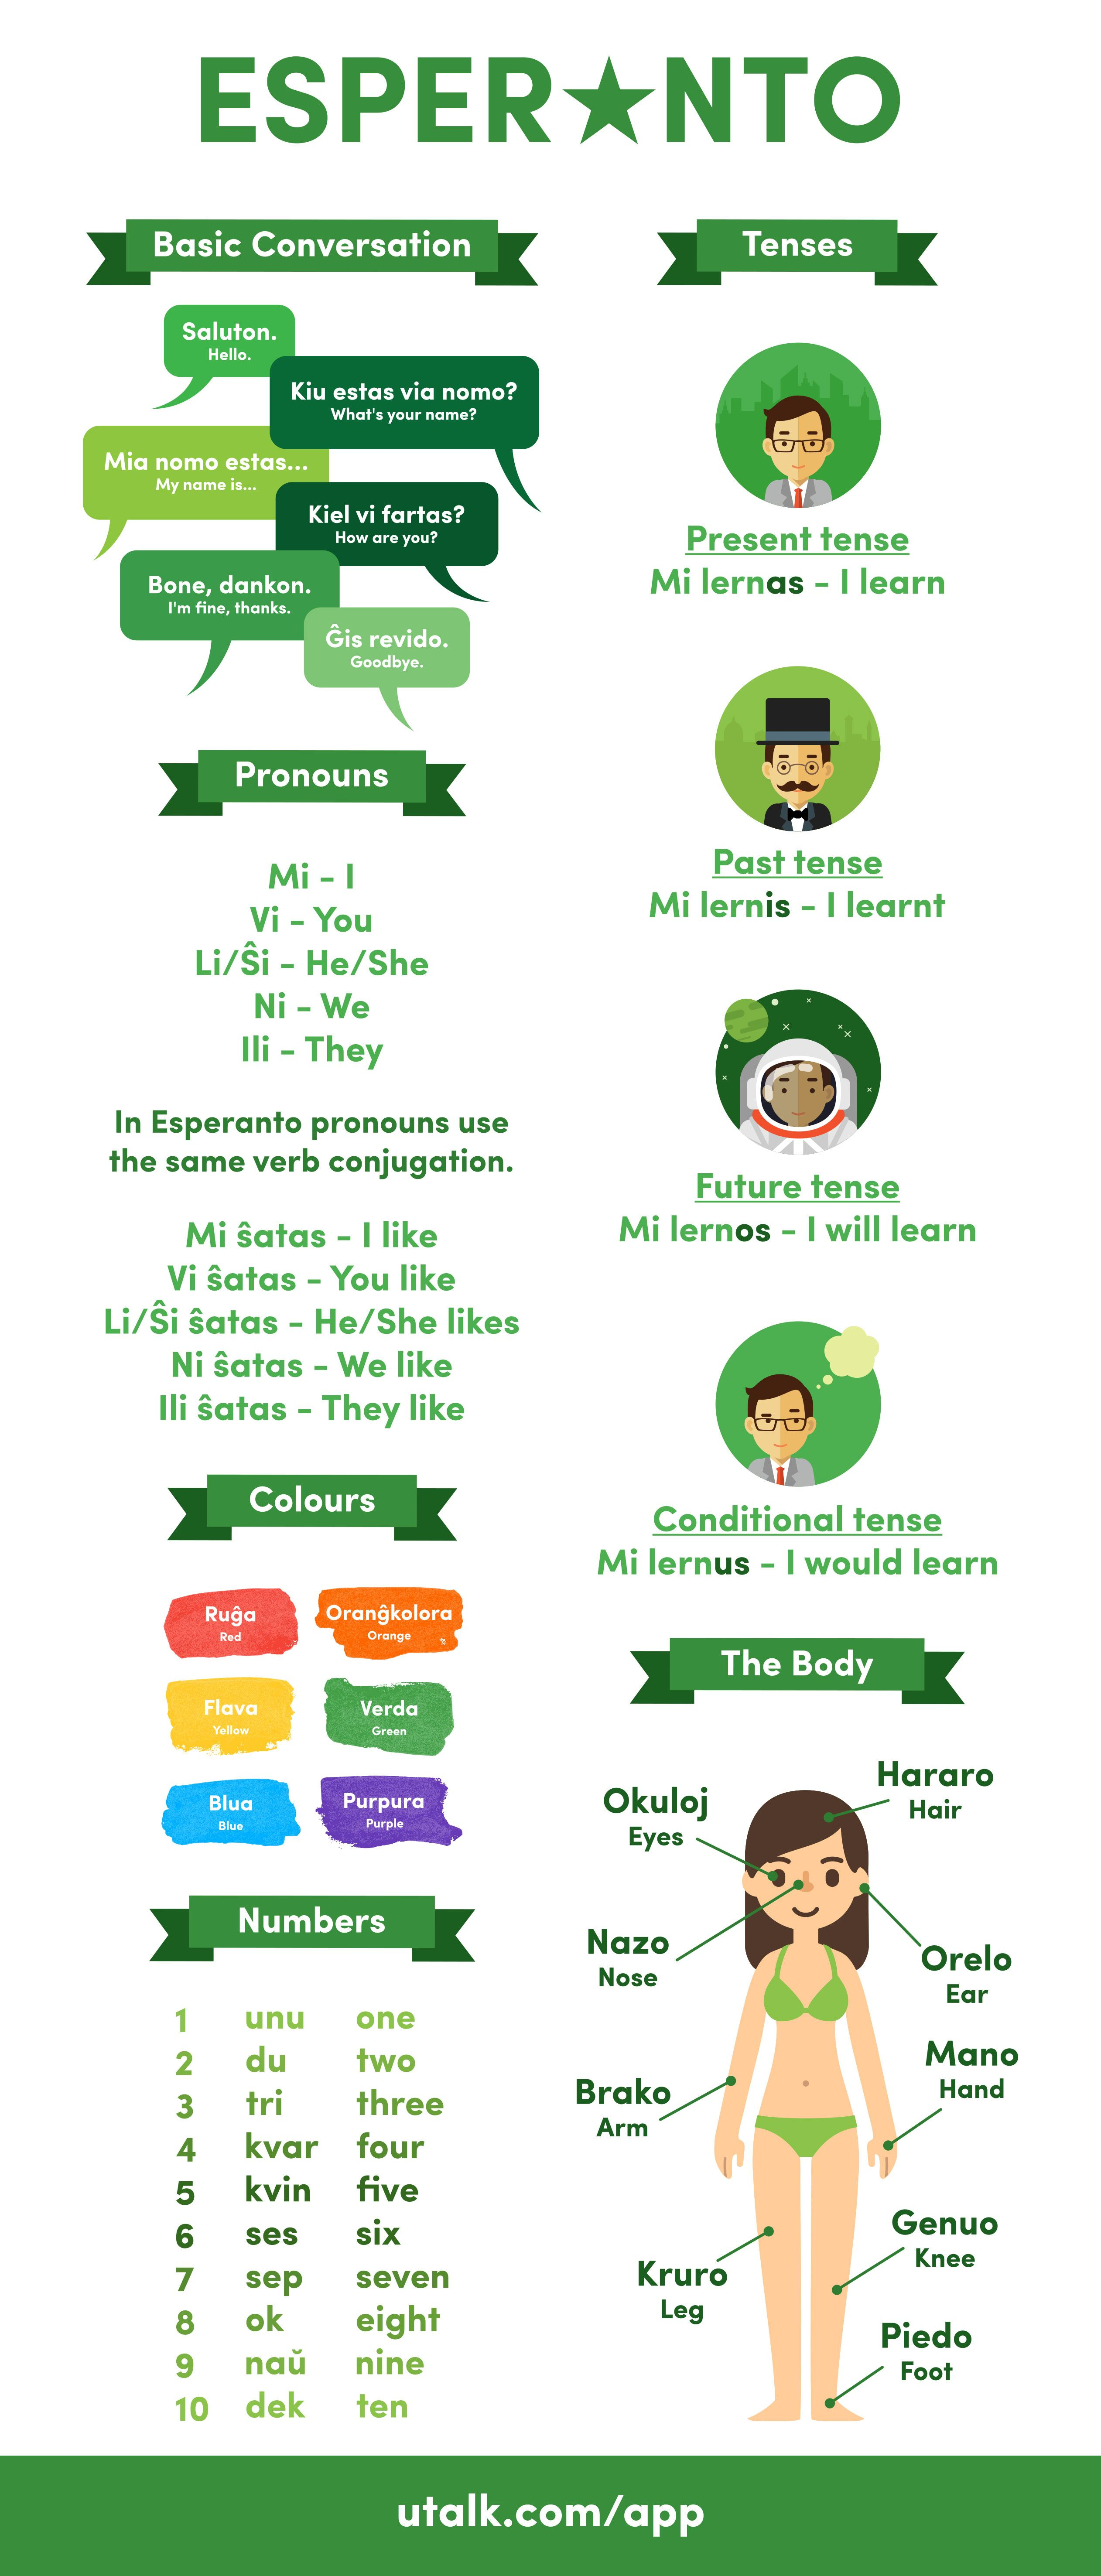 Esperanto is really fun actually, and a great place to start with learning foreign language =D